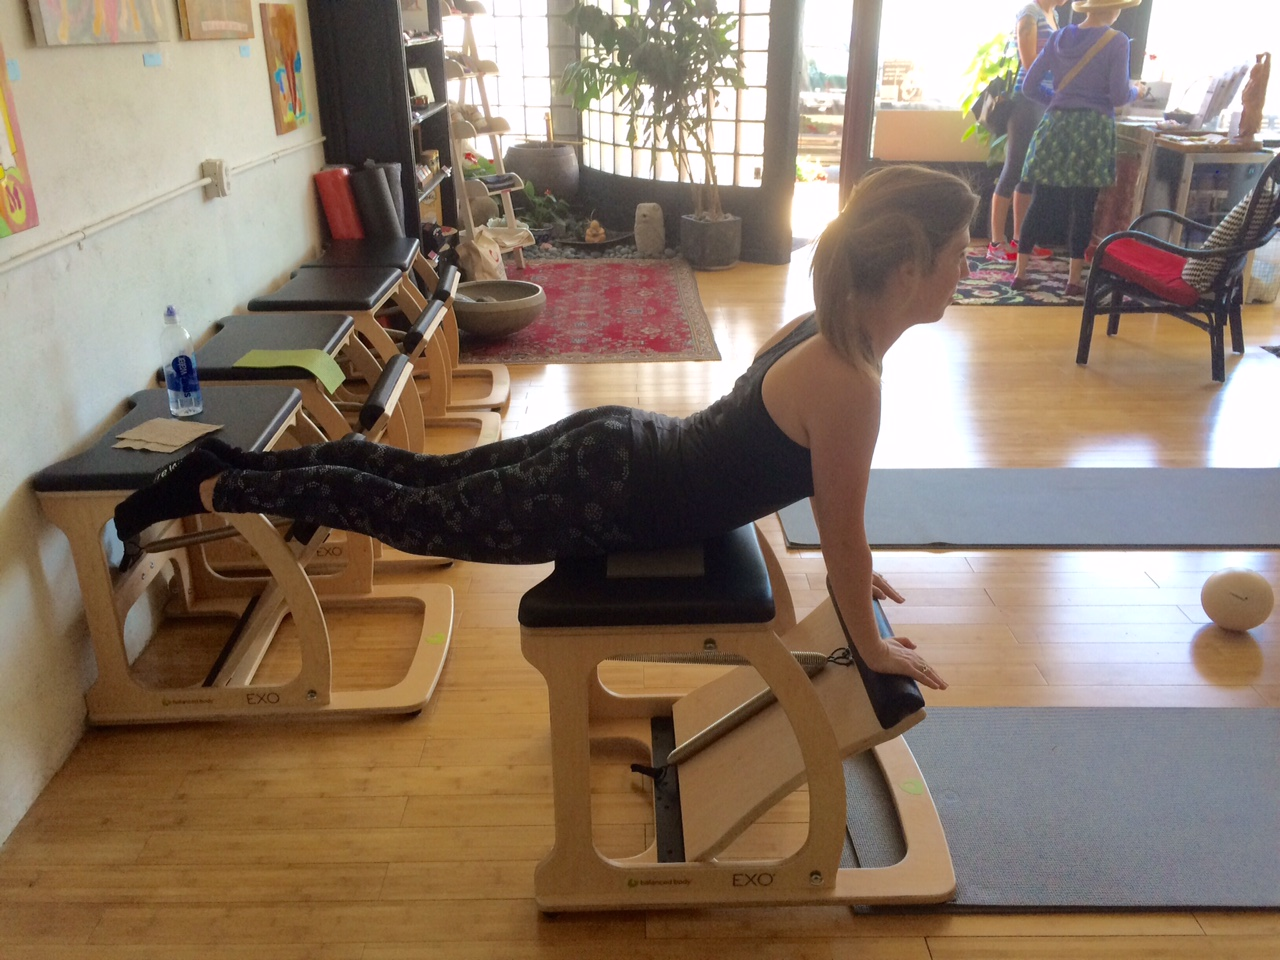 FullSizeRender IMG_8524 & Wunda-ful Chair (Level 1-3) at Whole Body Method u2013 sweat and repeat